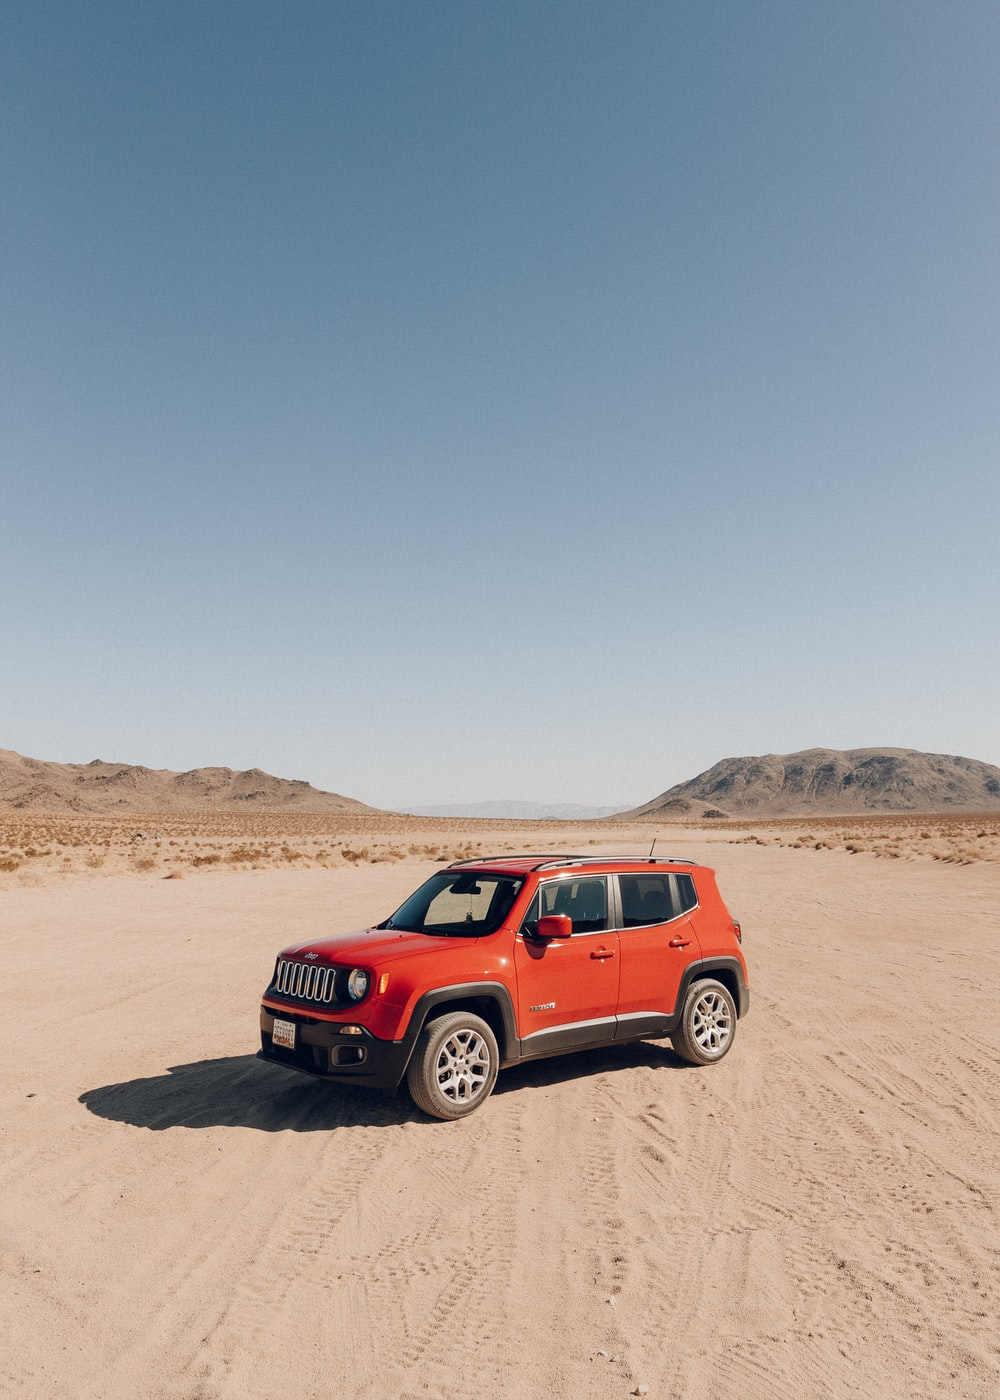 Red Suv On Brown Sand Under Blue Sky During Daytime Photo Free Giant Rock Image On Unsplash